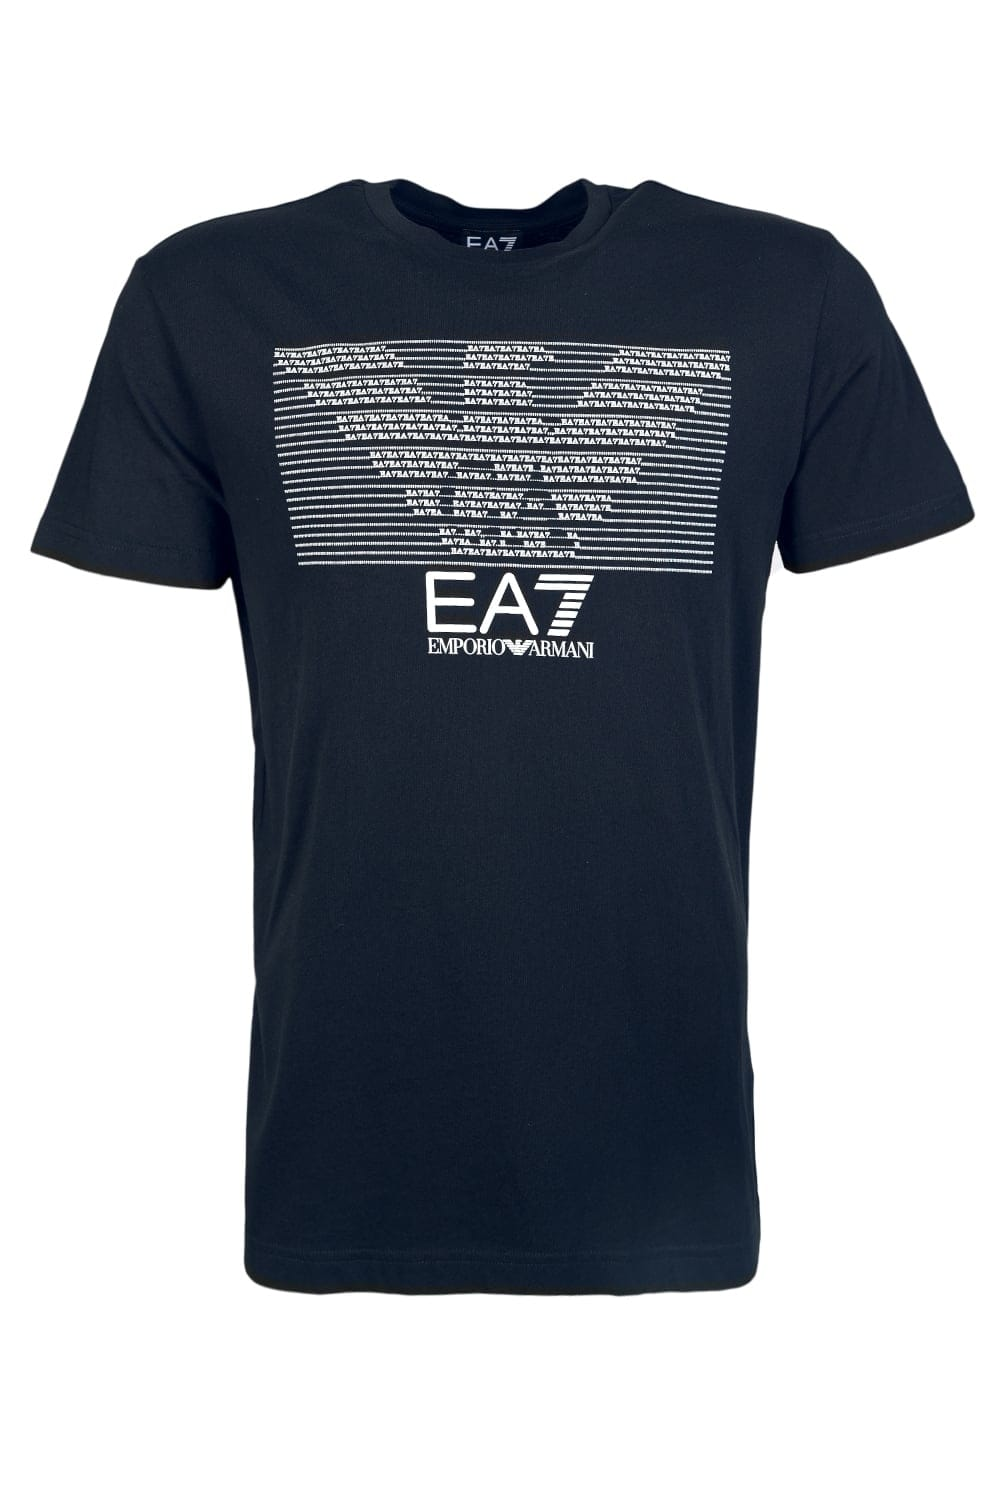 ea7 by emporio armani tee 273917 6p237 clothing from sage clothing uk